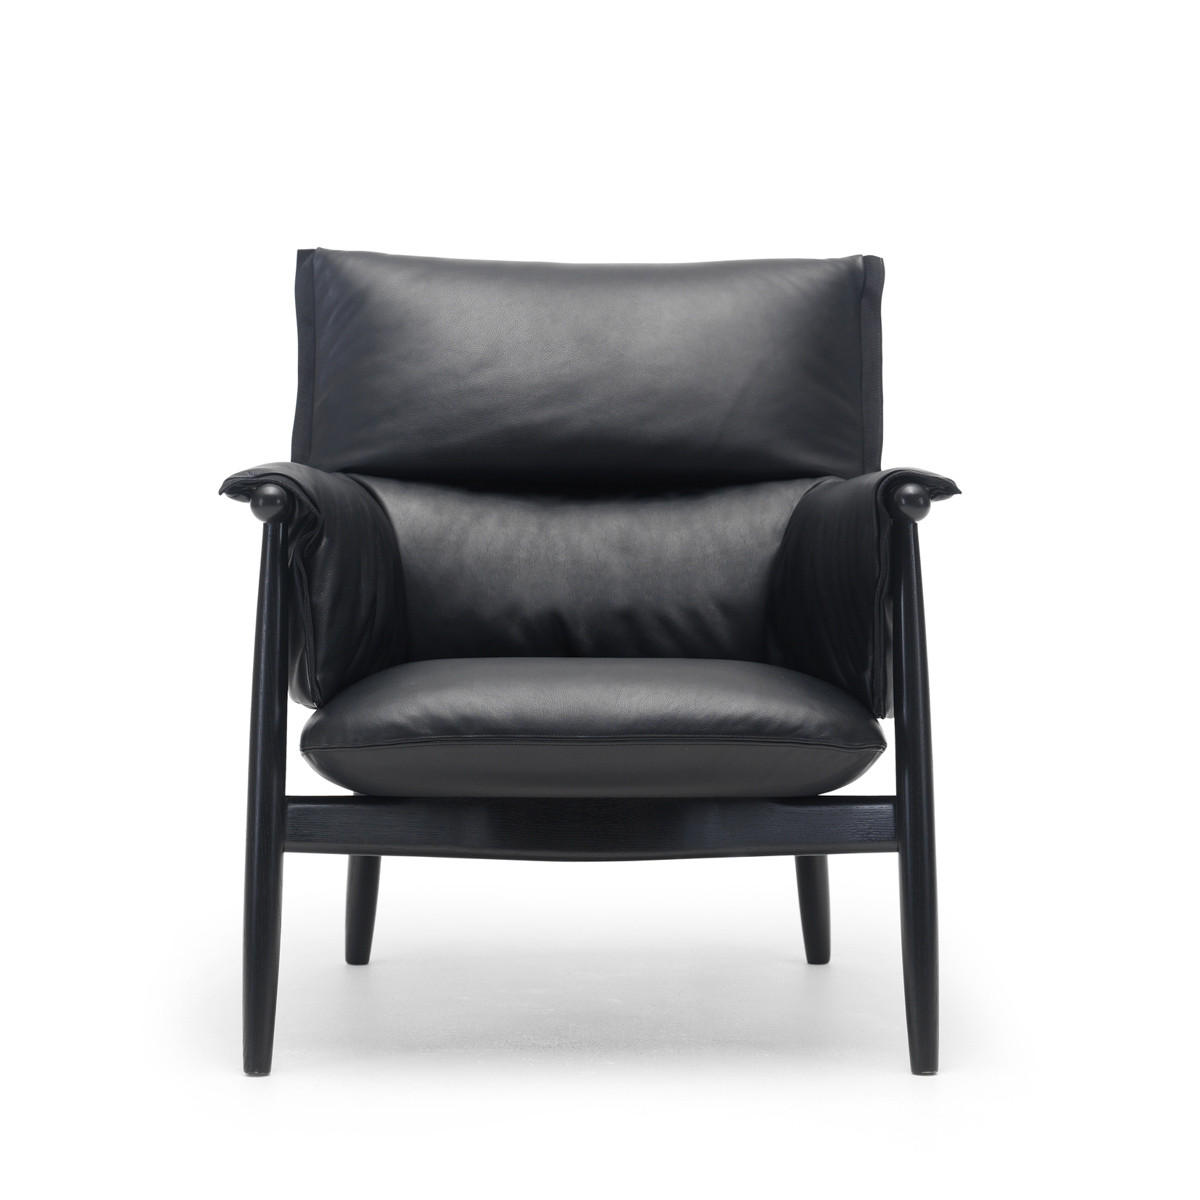 Carl Hansen E015 Lounge Chair